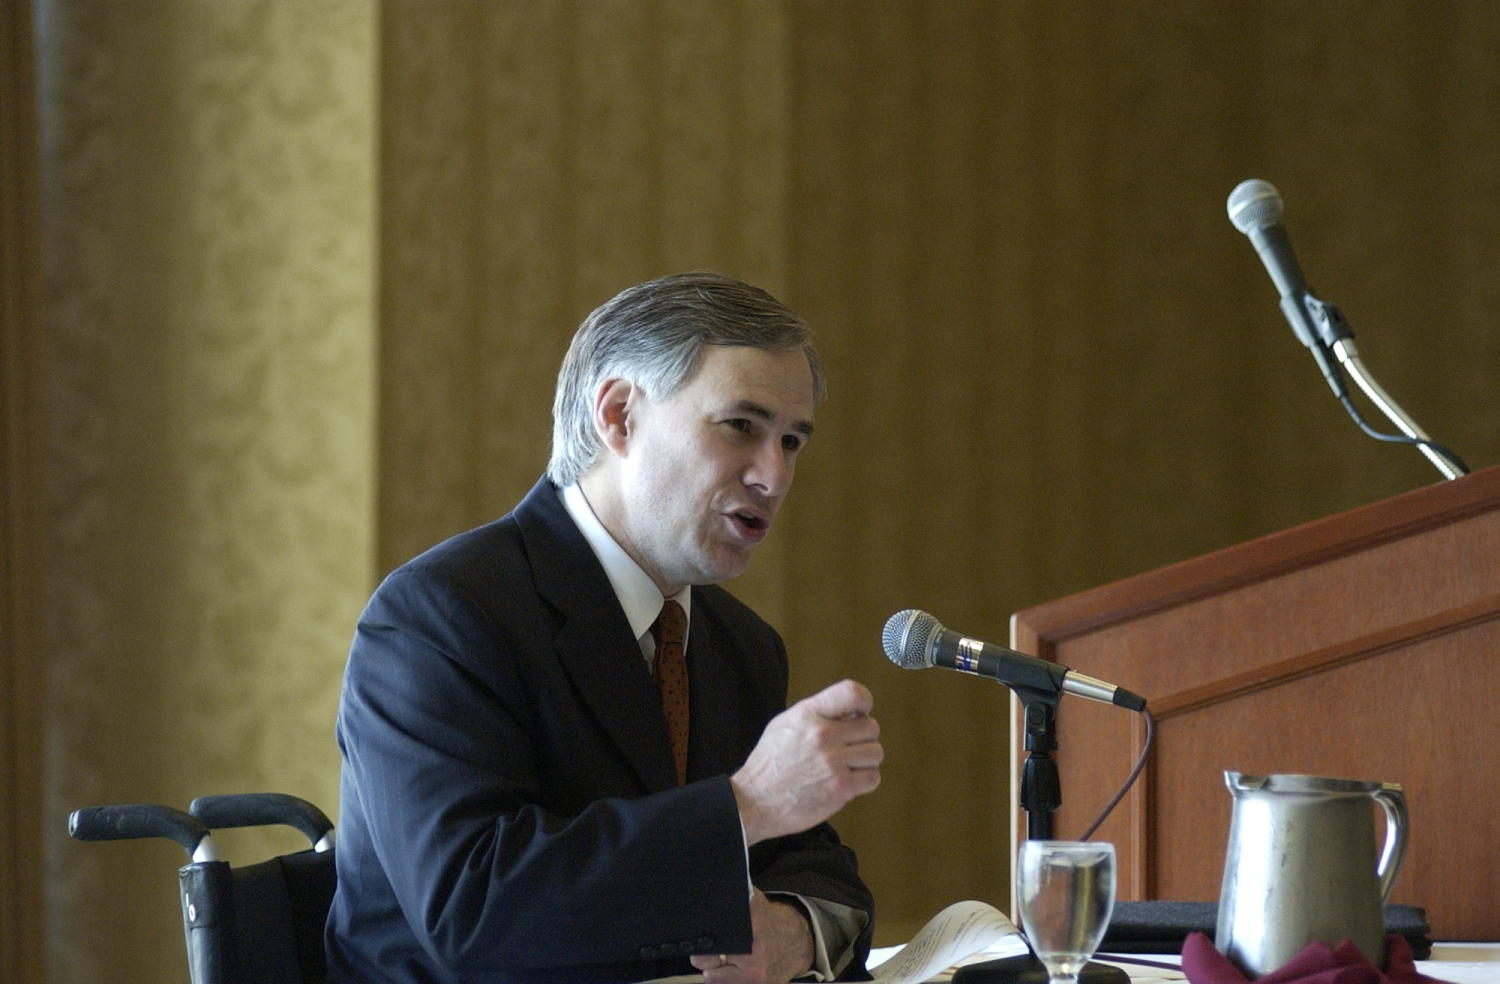 [Unidentified man attending the TDNA conference, 3], Photograph of an unidentified man seated in a chair and attending the 2004 Texas Daily News Association annual conference held in Corpus Christi. The man is seen speaking into the microphone placed in front of him and addressing the conference attendees.,